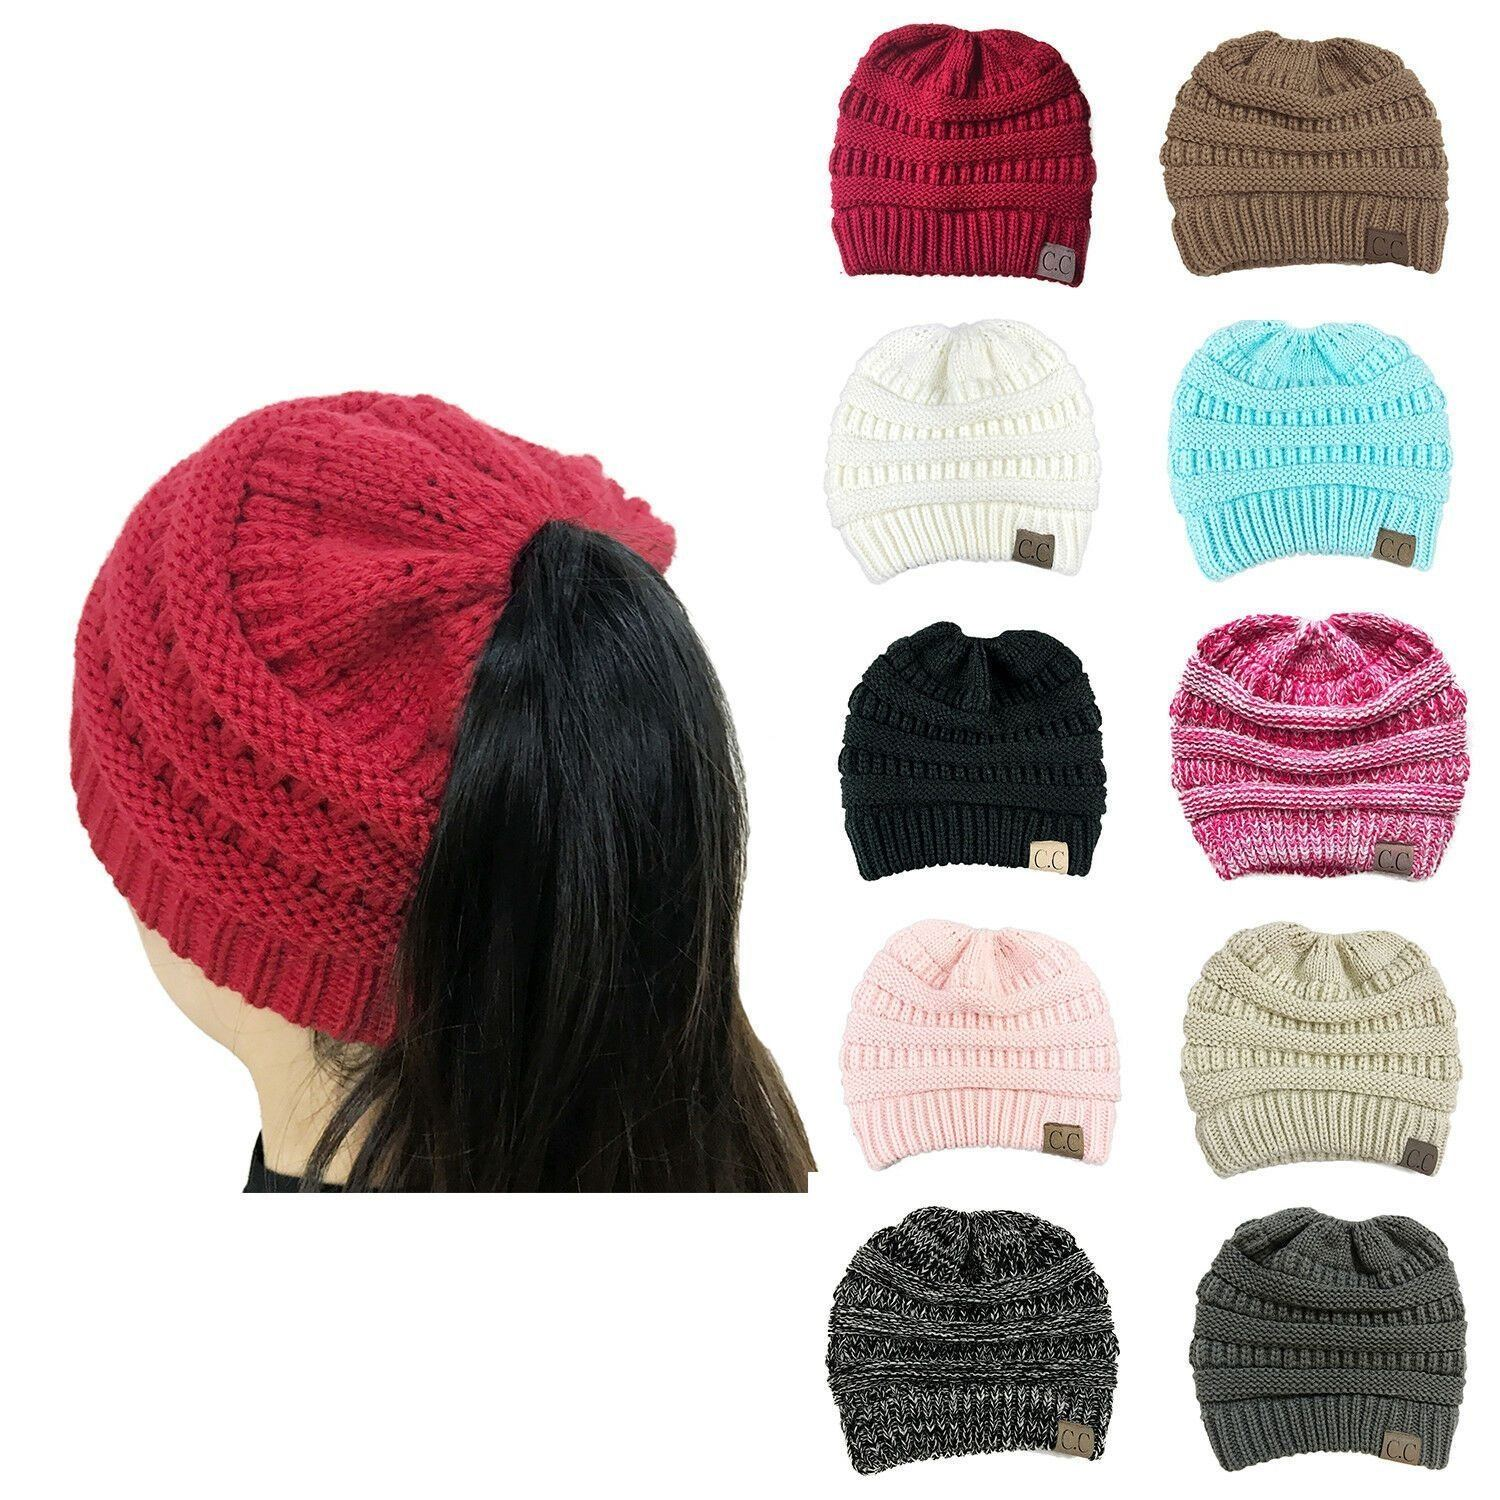 e0de1913 Click to enlarge. Home Women Bubble Knit Slouchy Baggy Beanie Oversize  Winter Hat Ski Slouchy Cap Skull ...